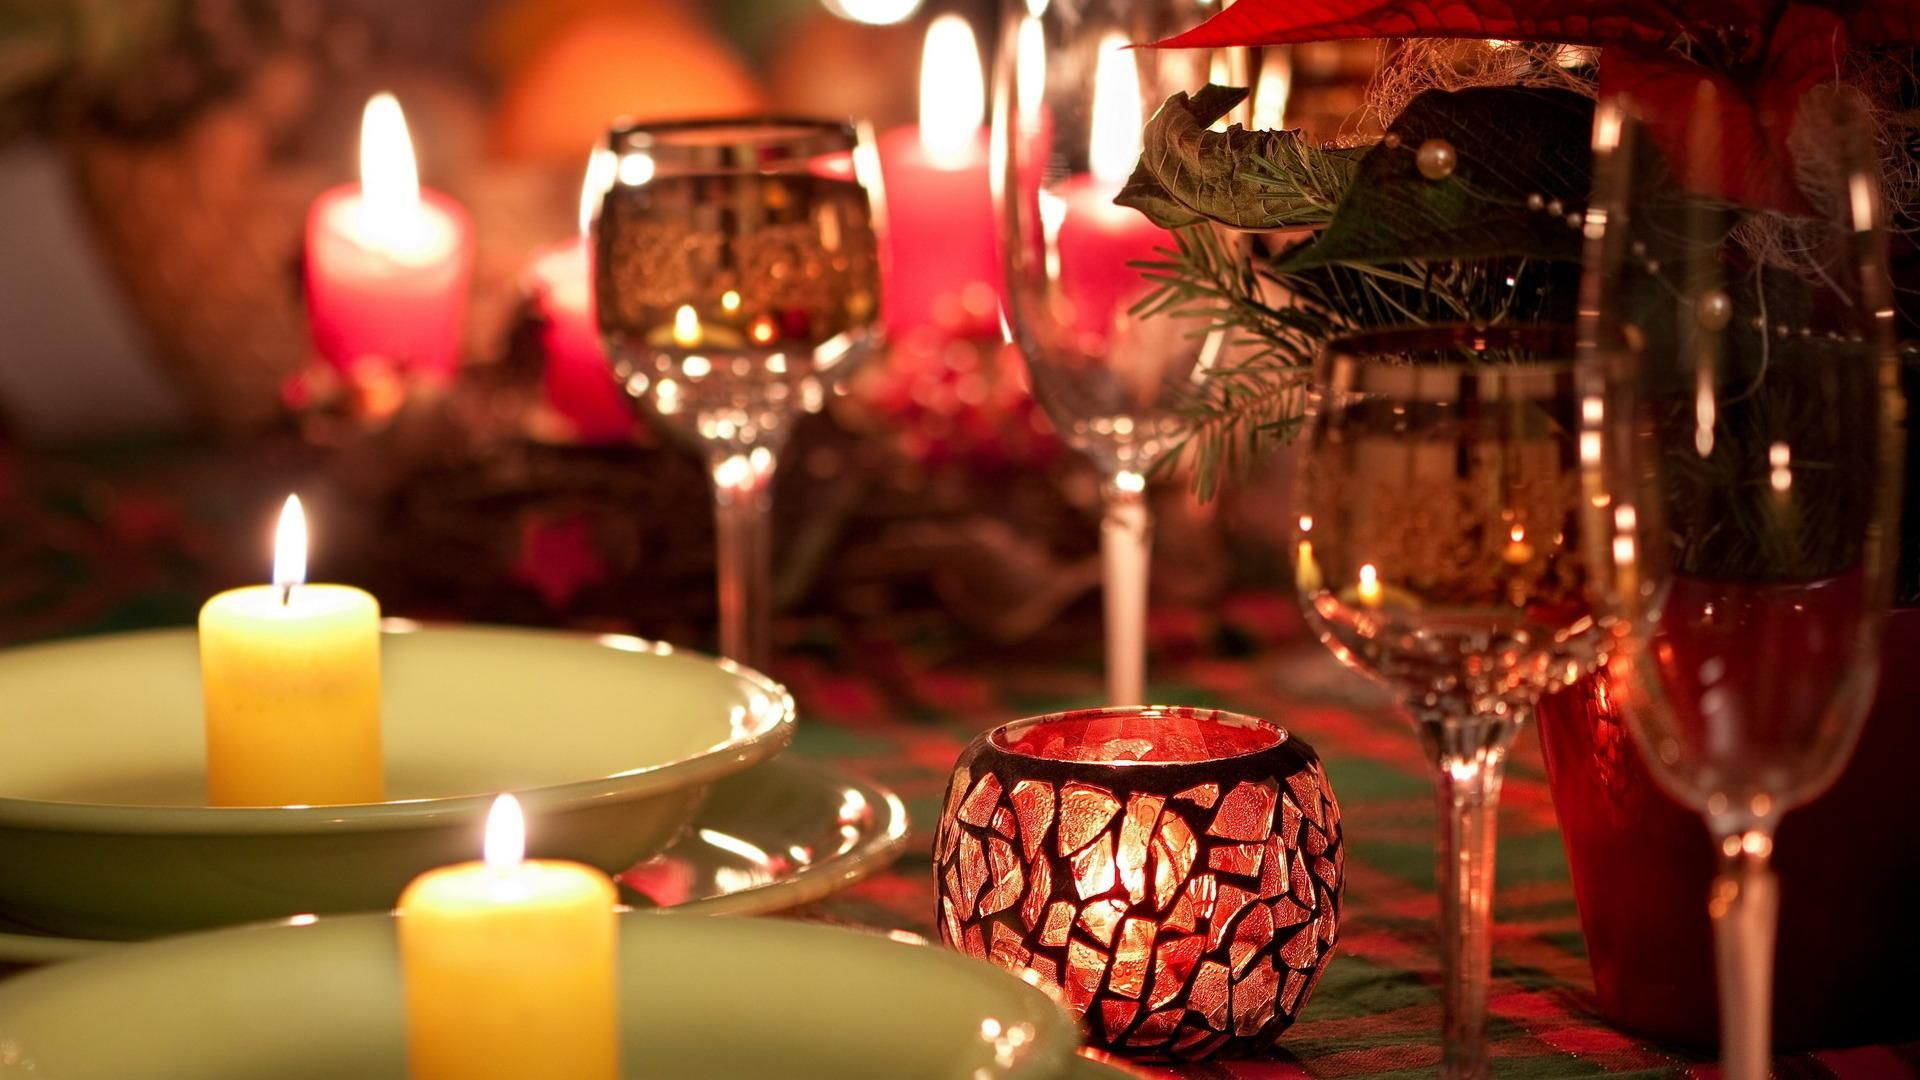 Romenting Dinner Wallpaper 1080 X 1920 Need Iphone 6s Plus Wallpaper Background For Iphone6s Candle Light Dinner Candle Decor Christmas Place Settings